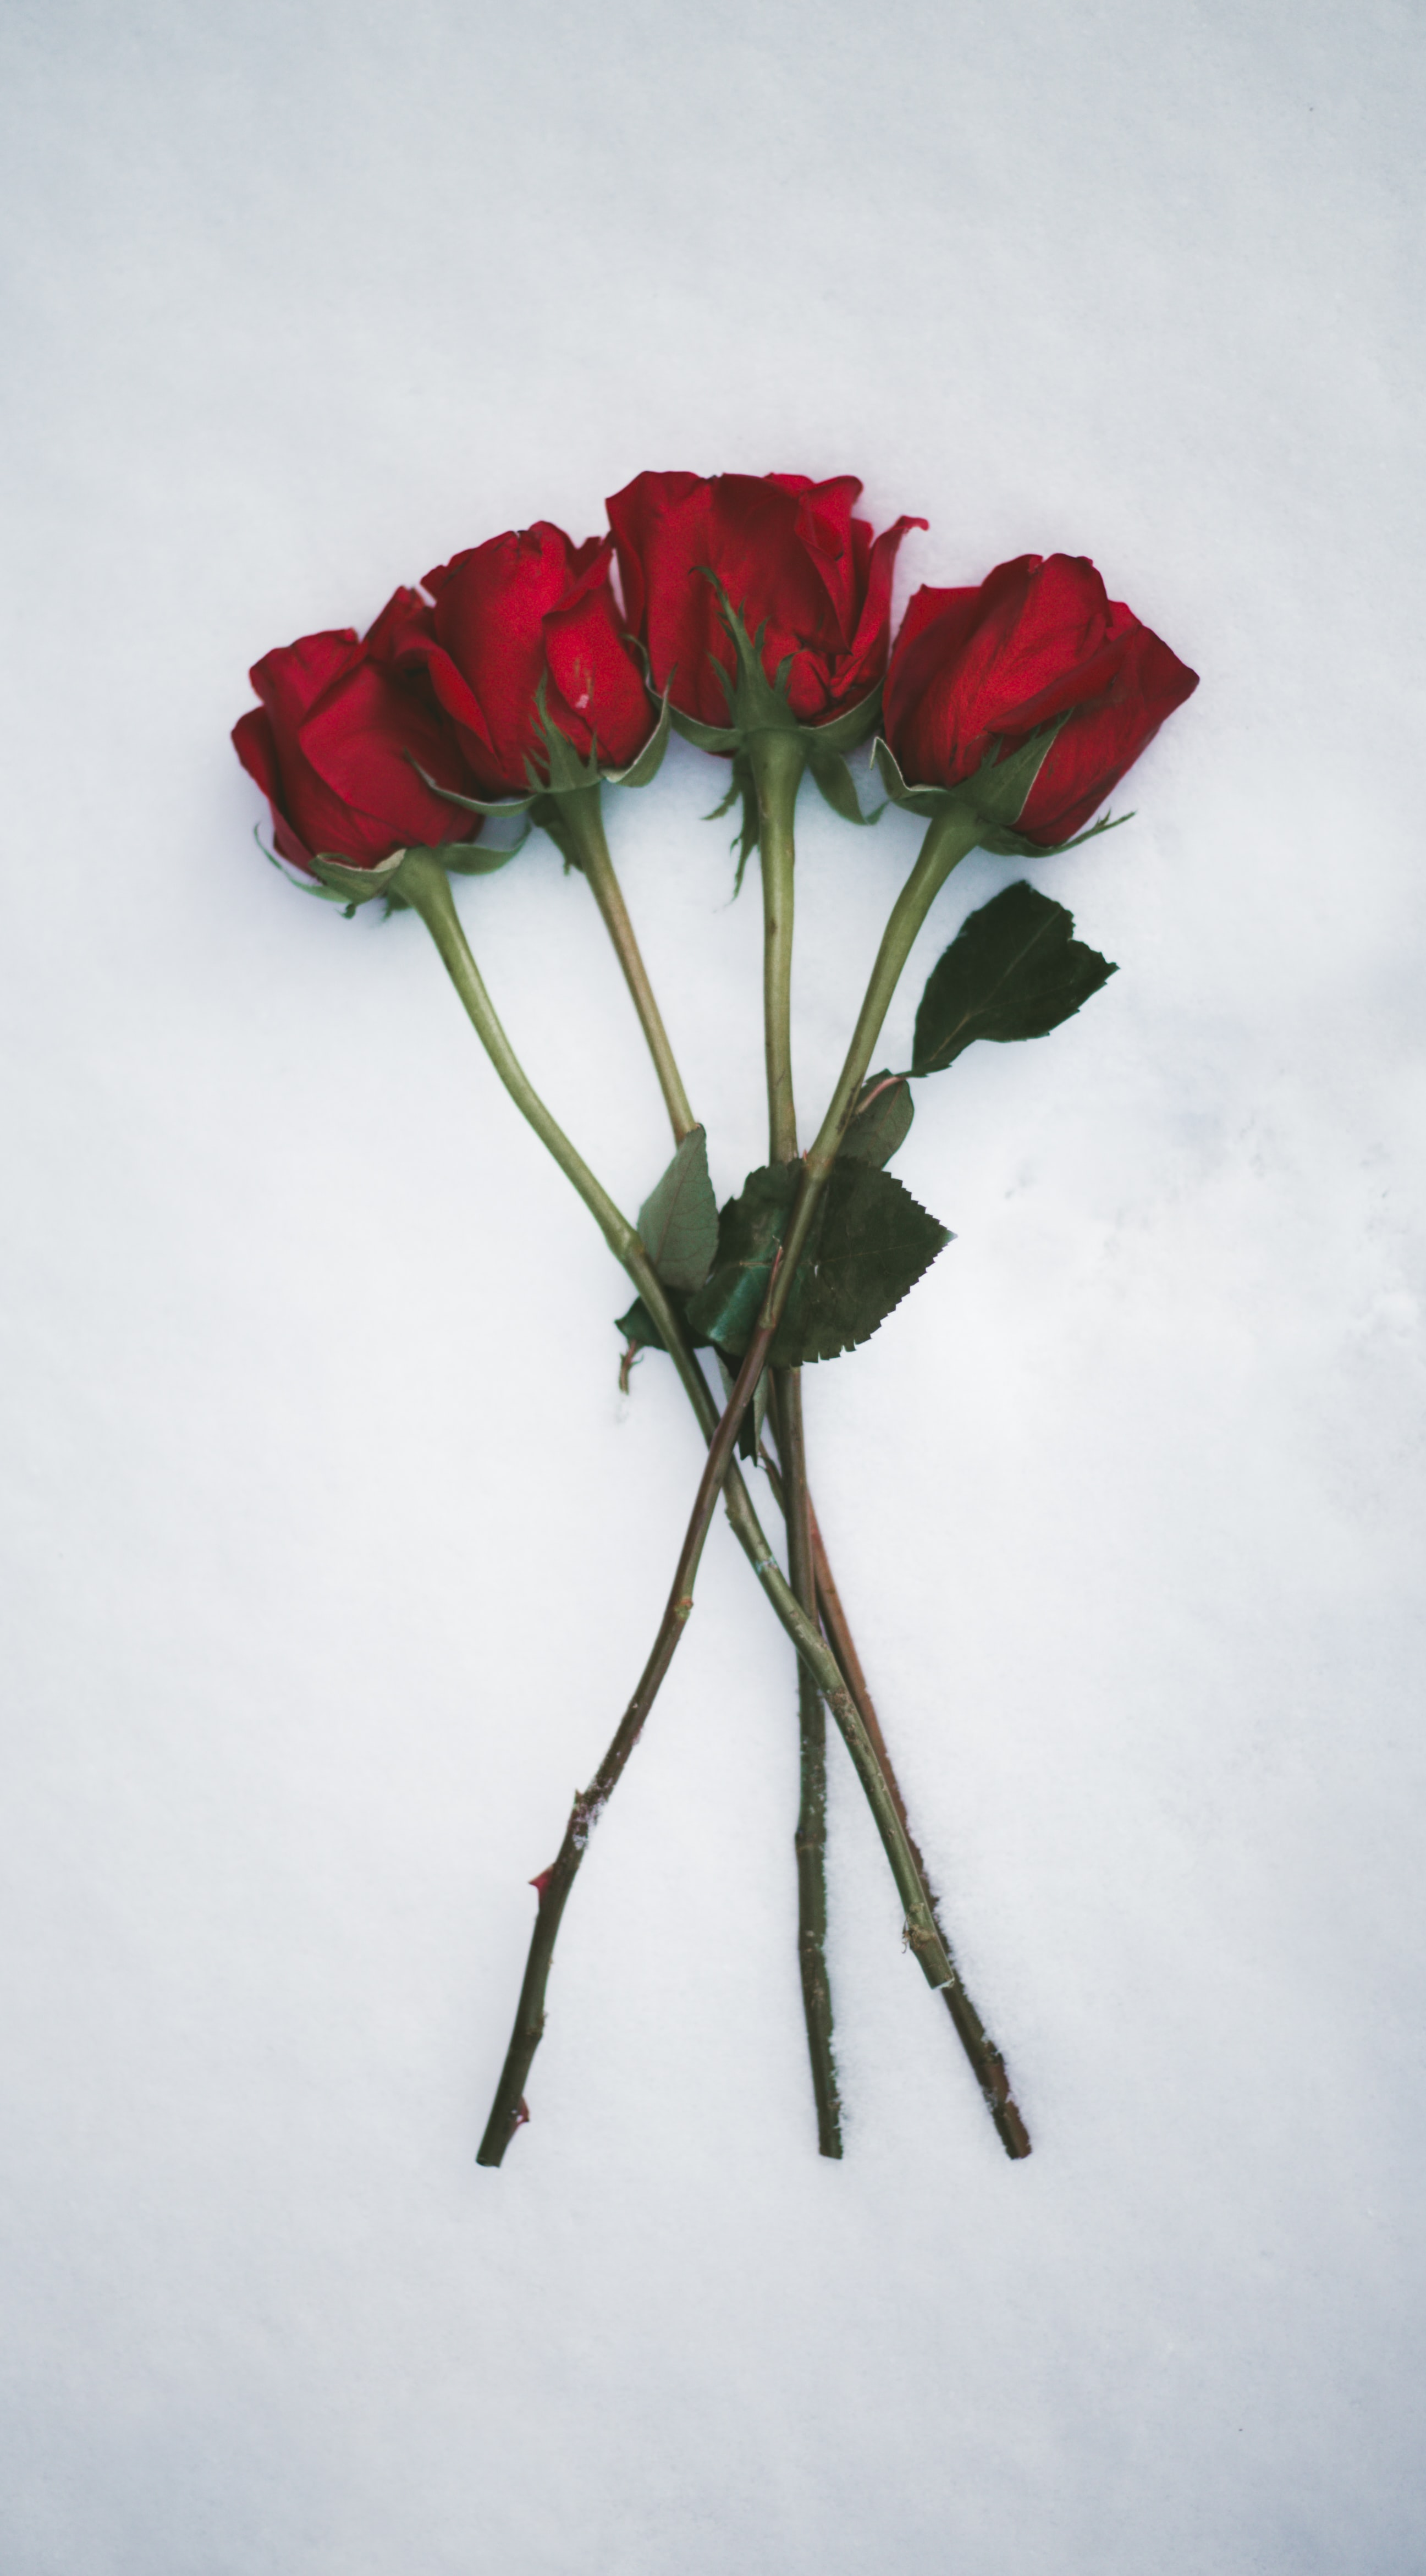 red rose flowers on white surface